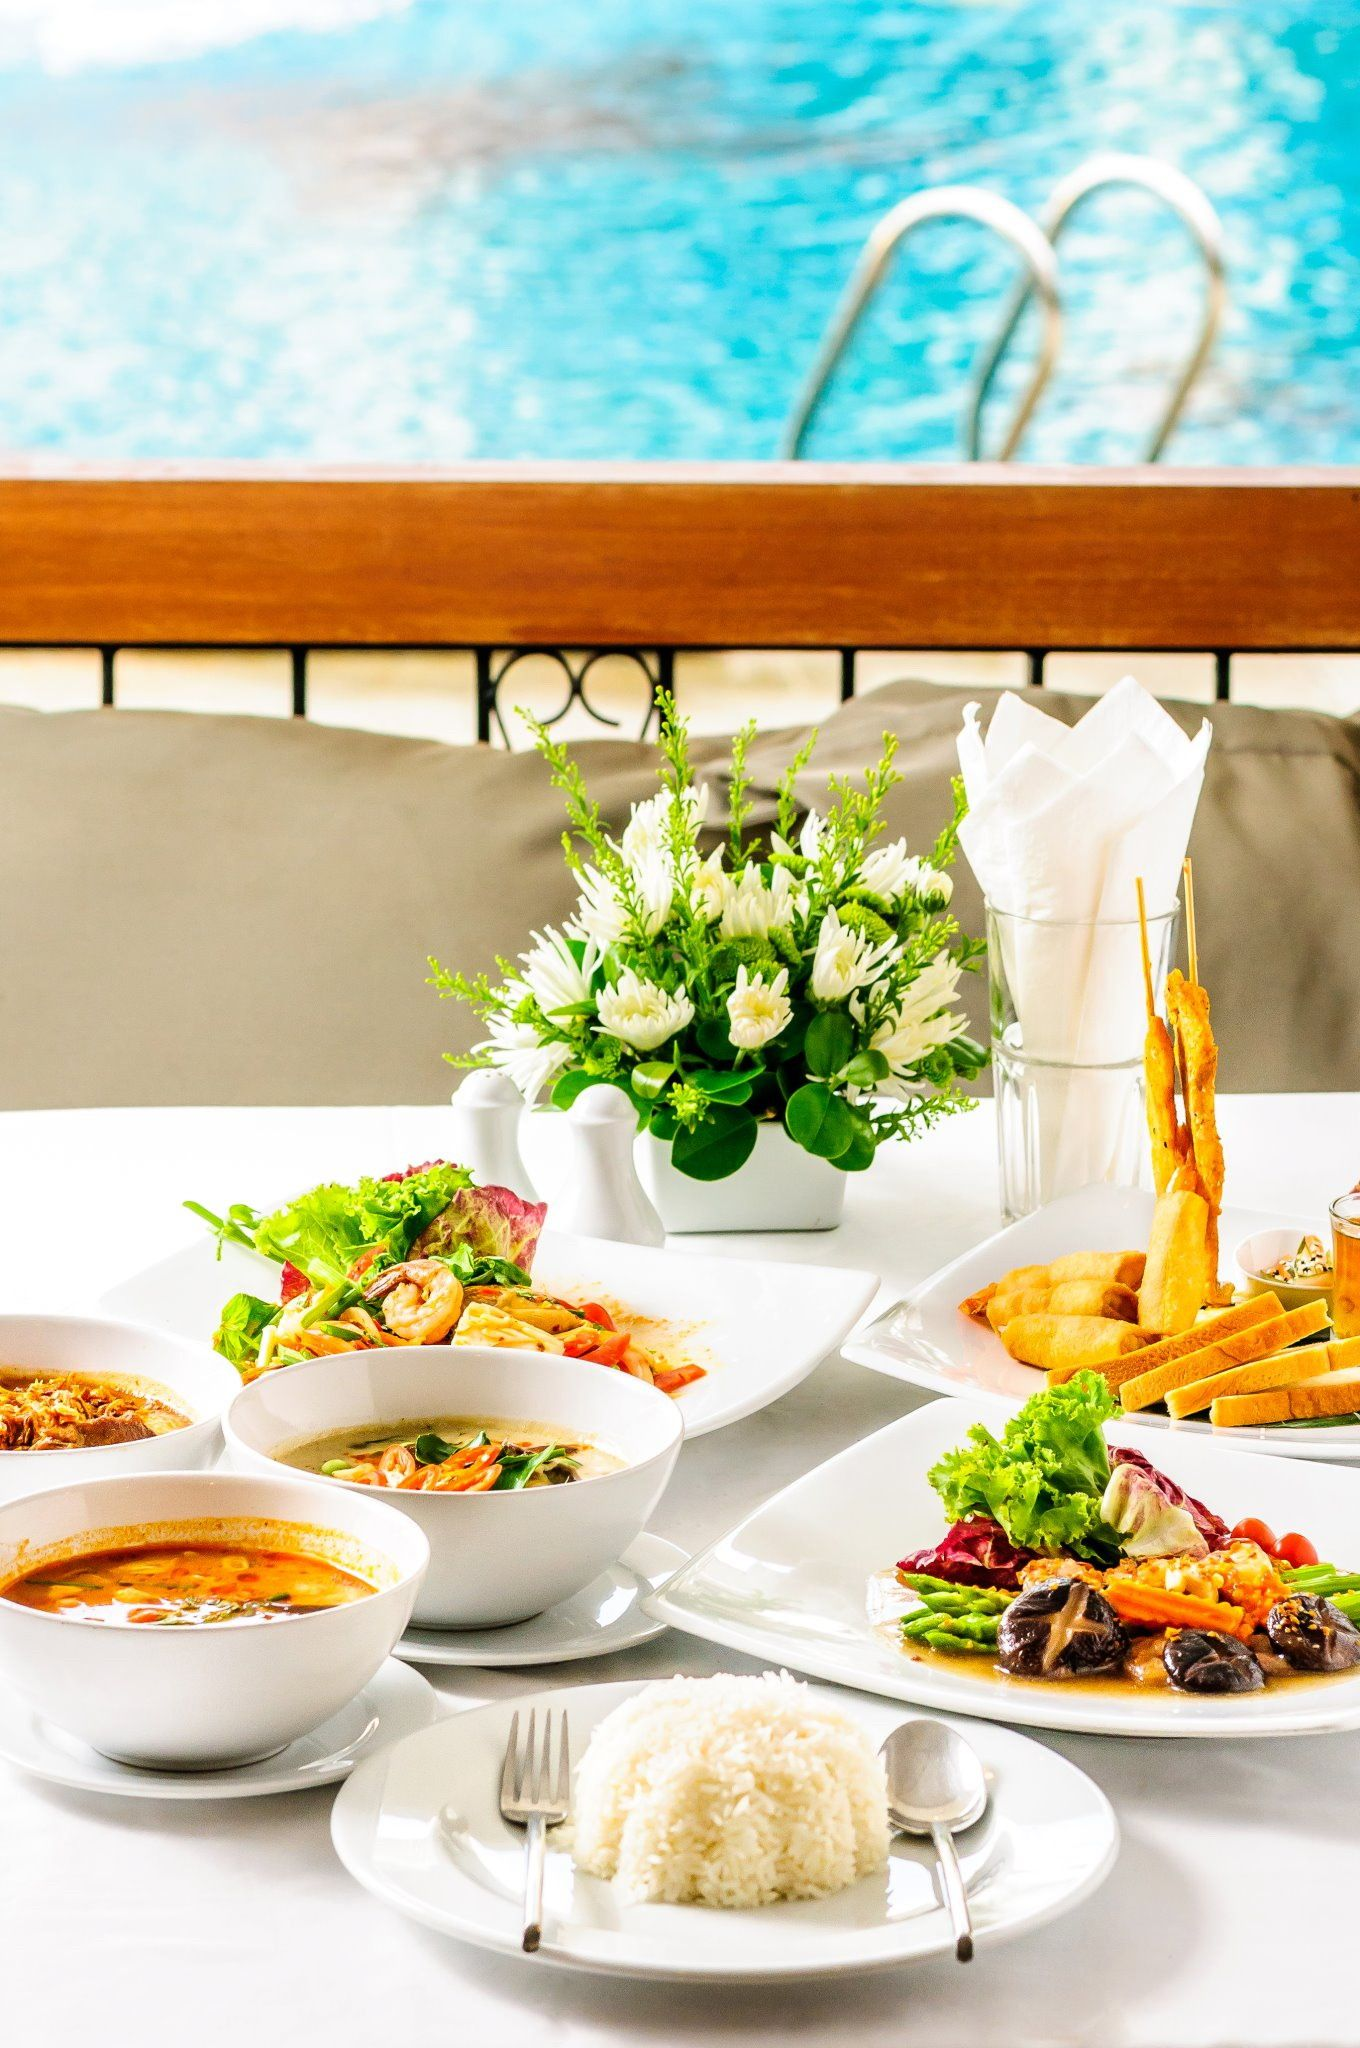 Some awesome cuisine available at the poolside at Sawaddi Patong Resort  http://www.patongsawaddi.com/